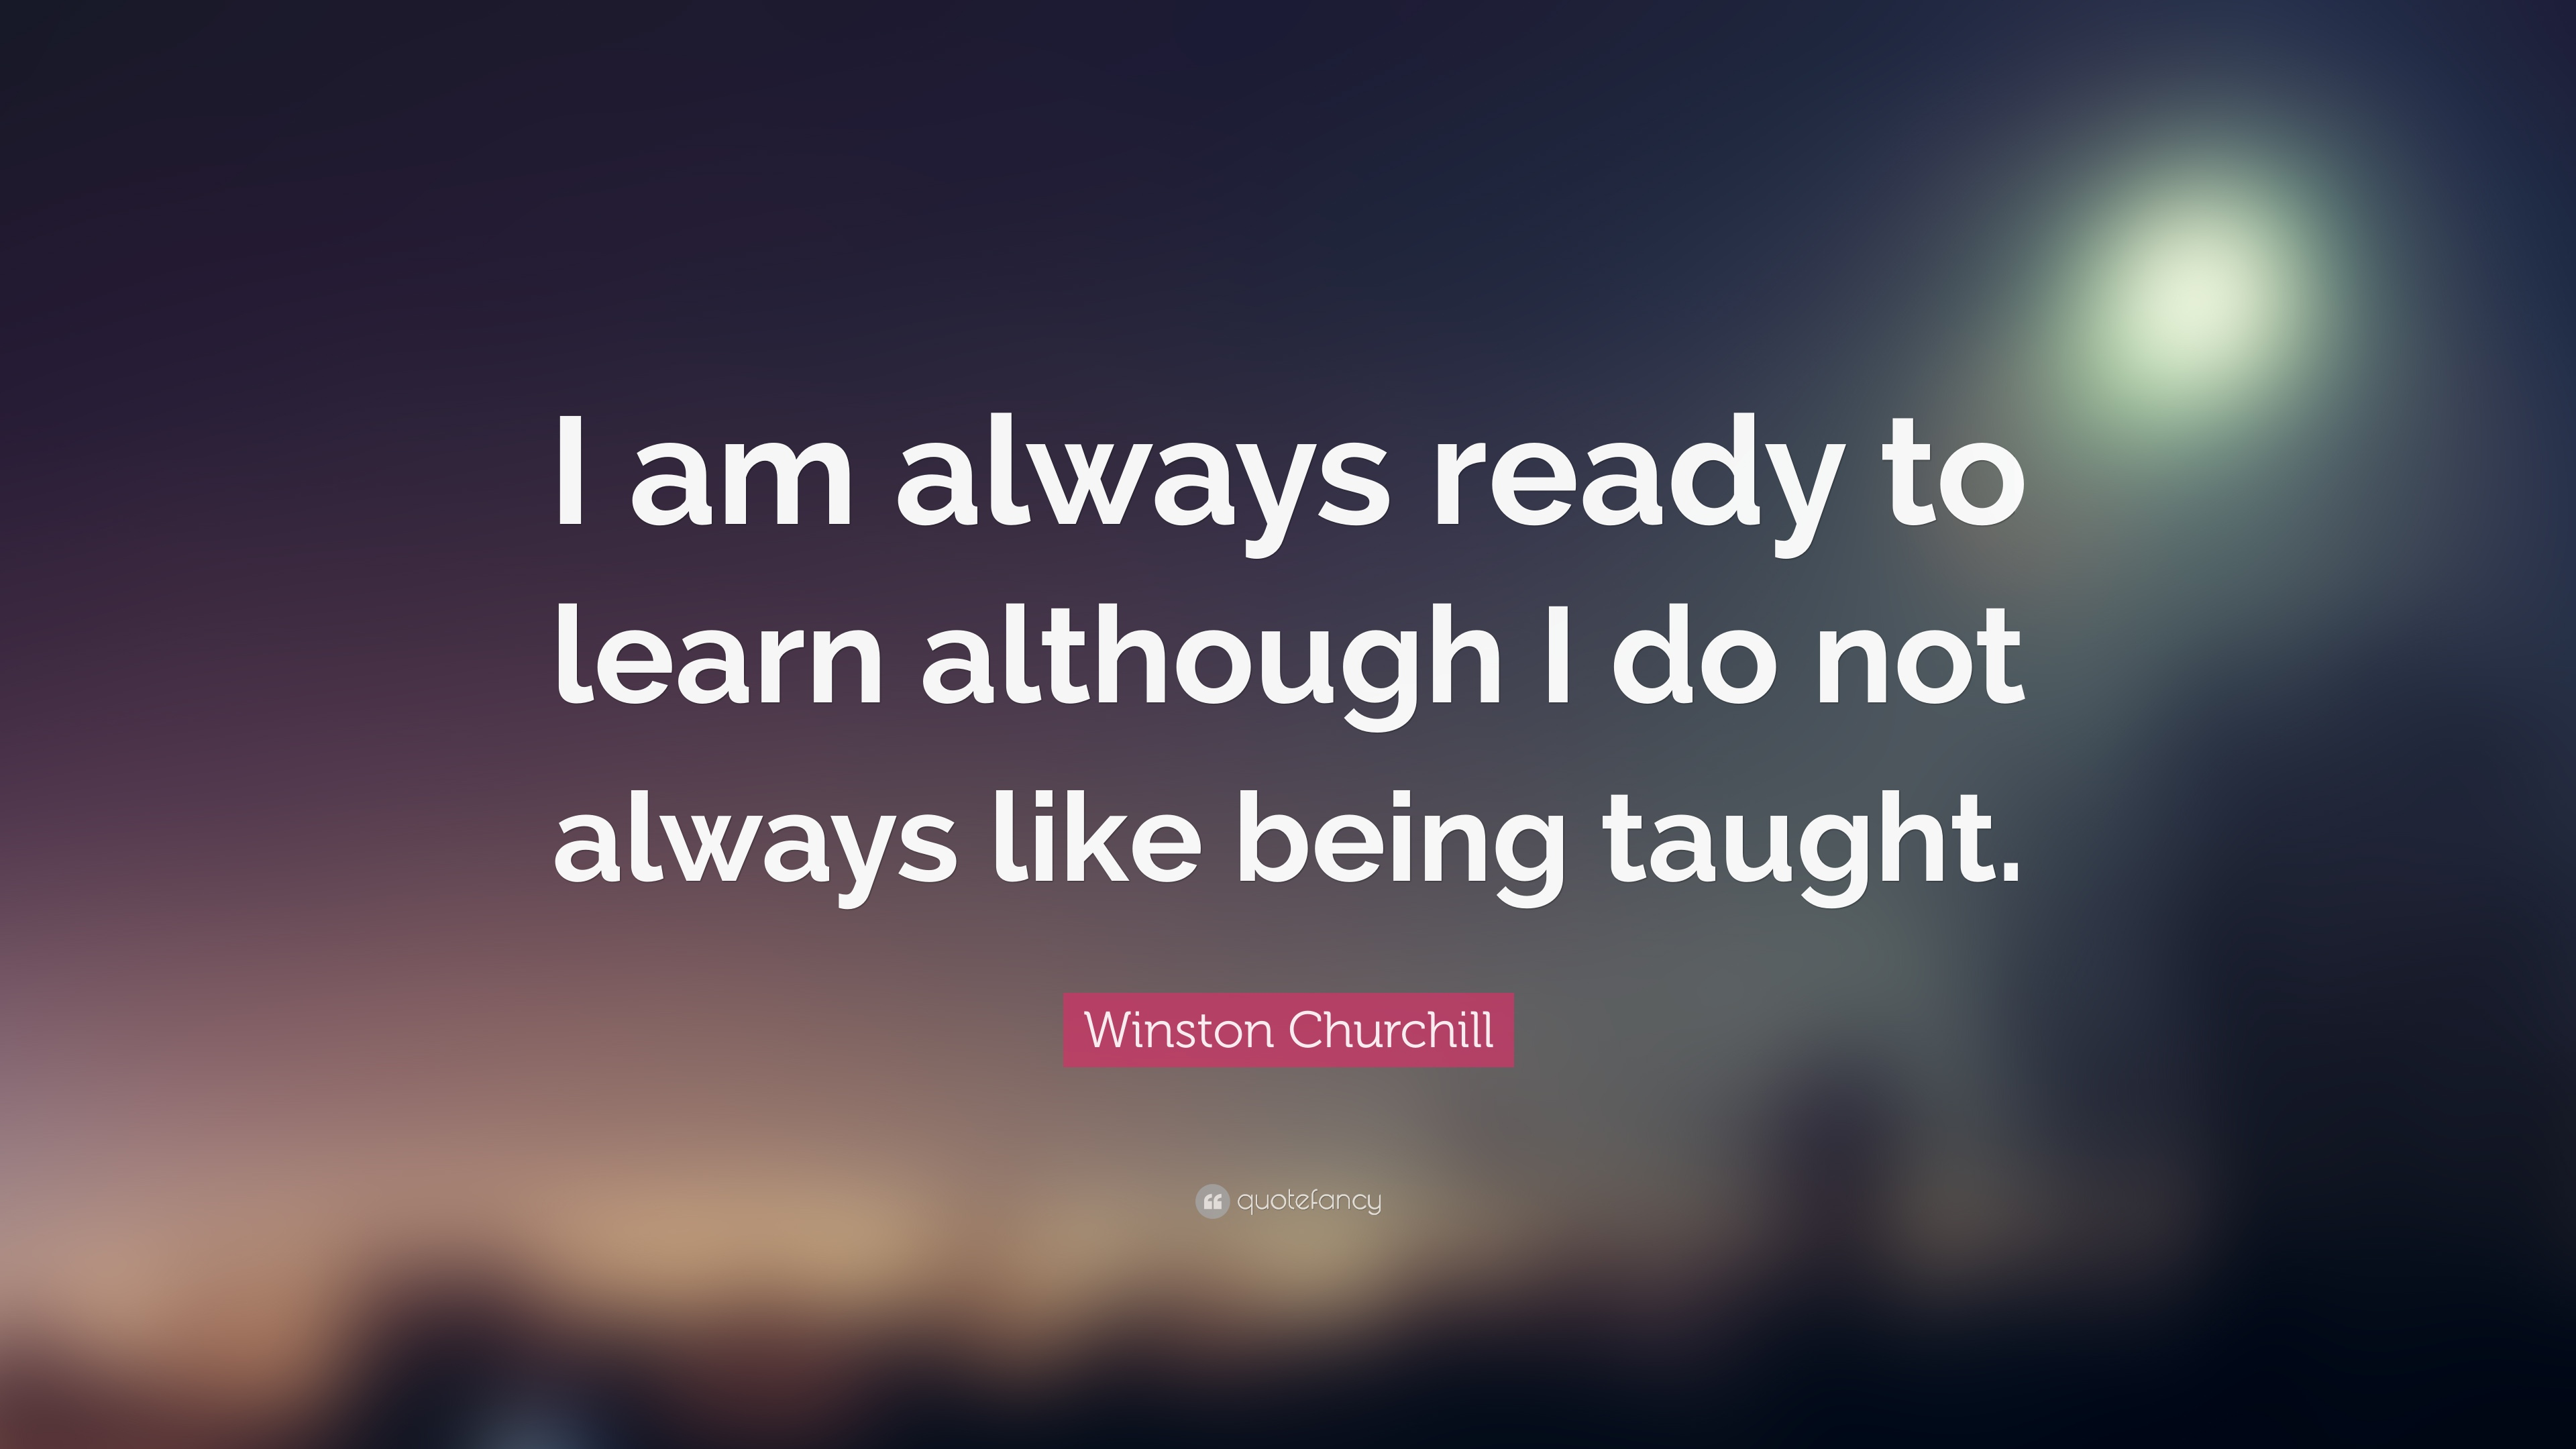 Winston Churchill - I am always ready to learn although I...